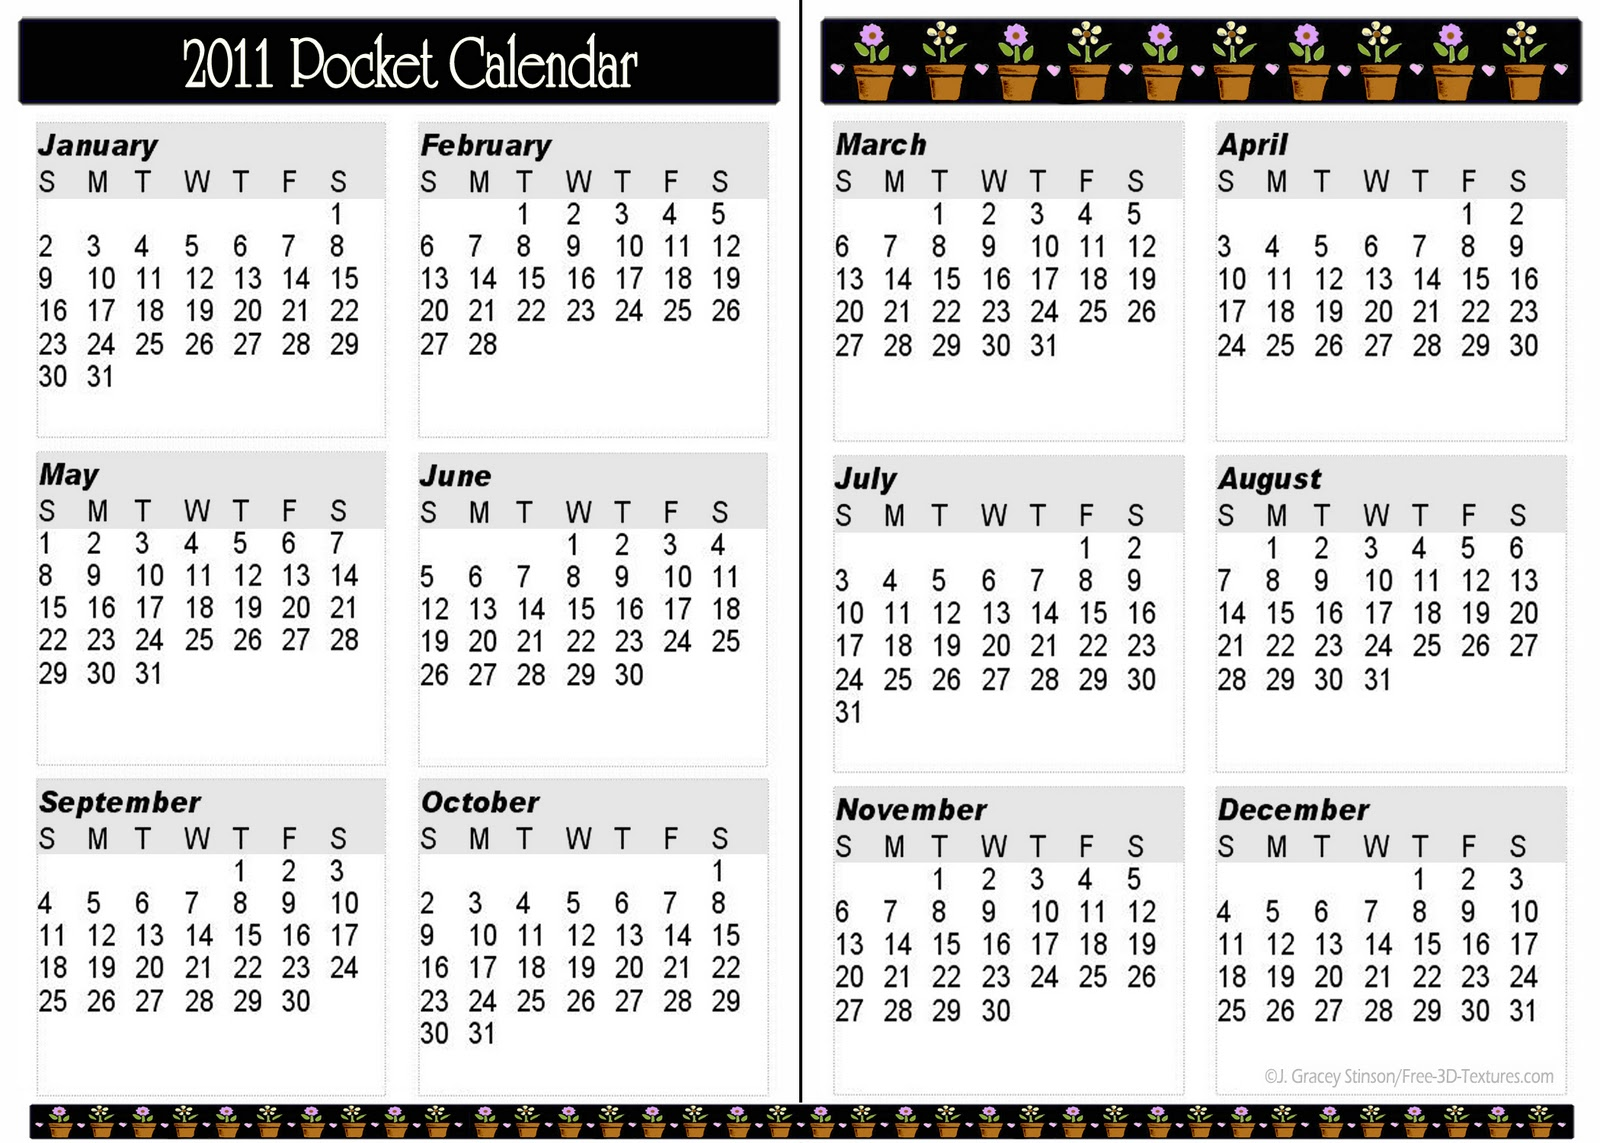 Pocket Calendar Design : Photography raphy pocket calendar templates